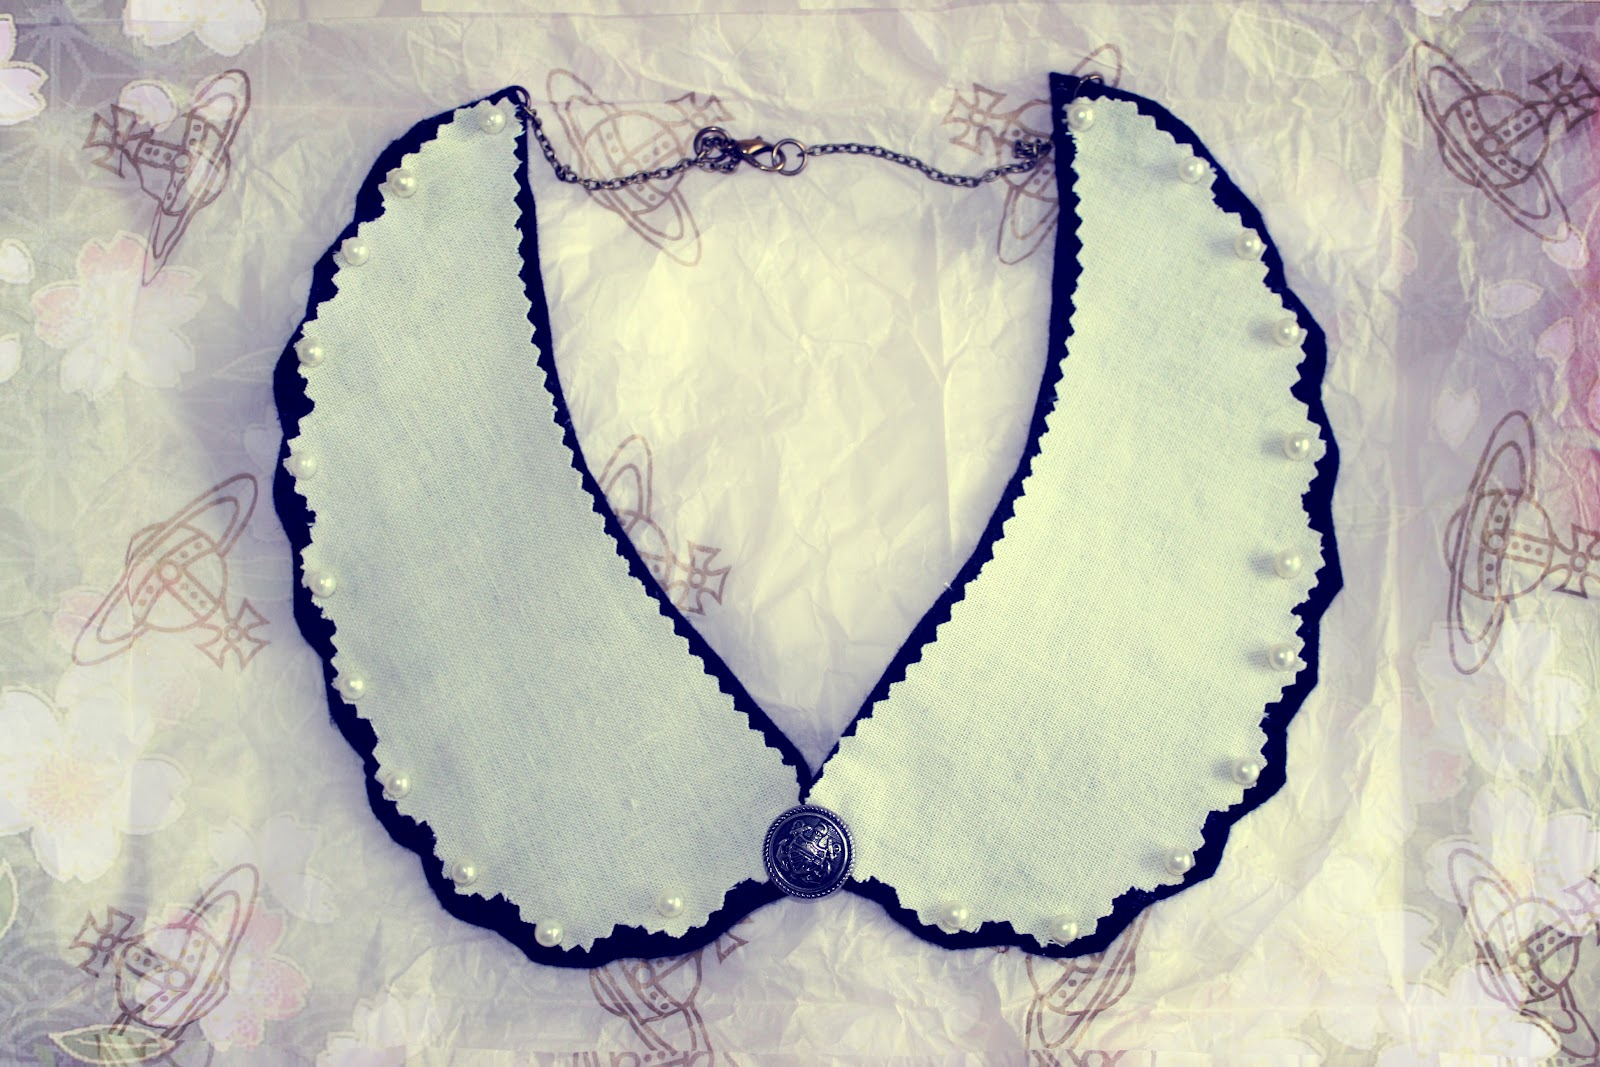 Handmade collar from Dotty Collars with pearls and scallop design